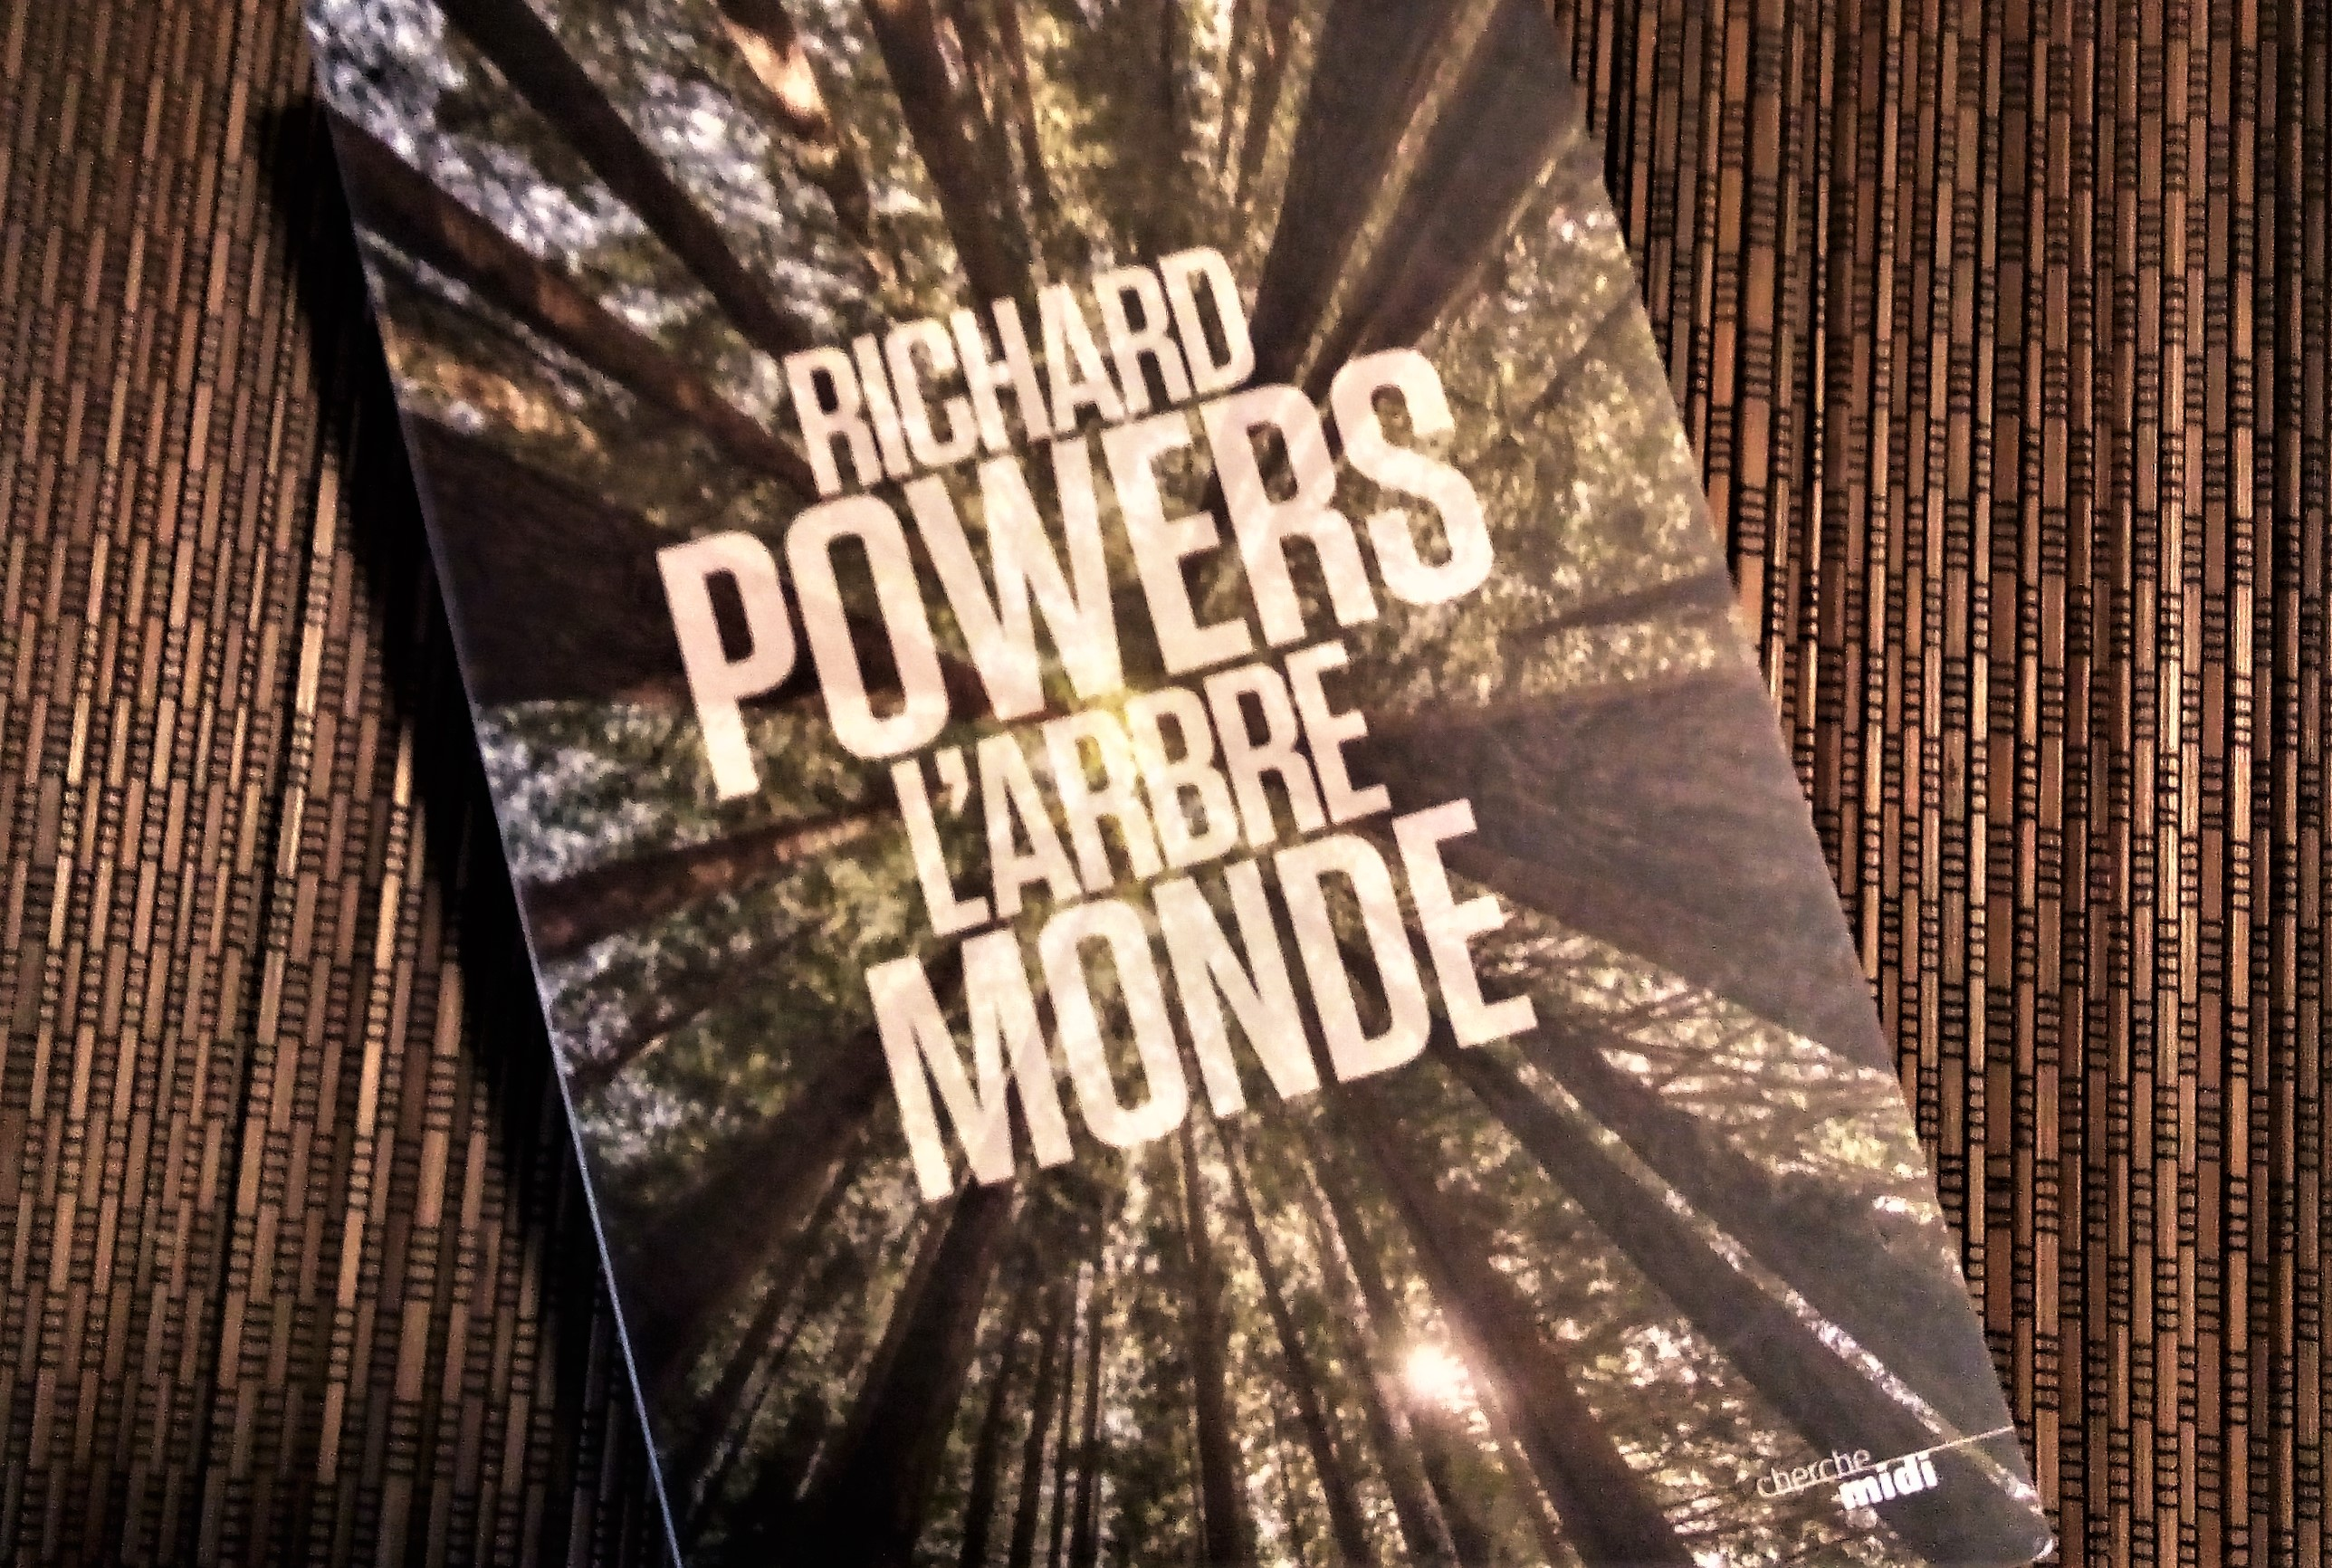 l'arbre monde de richard powers